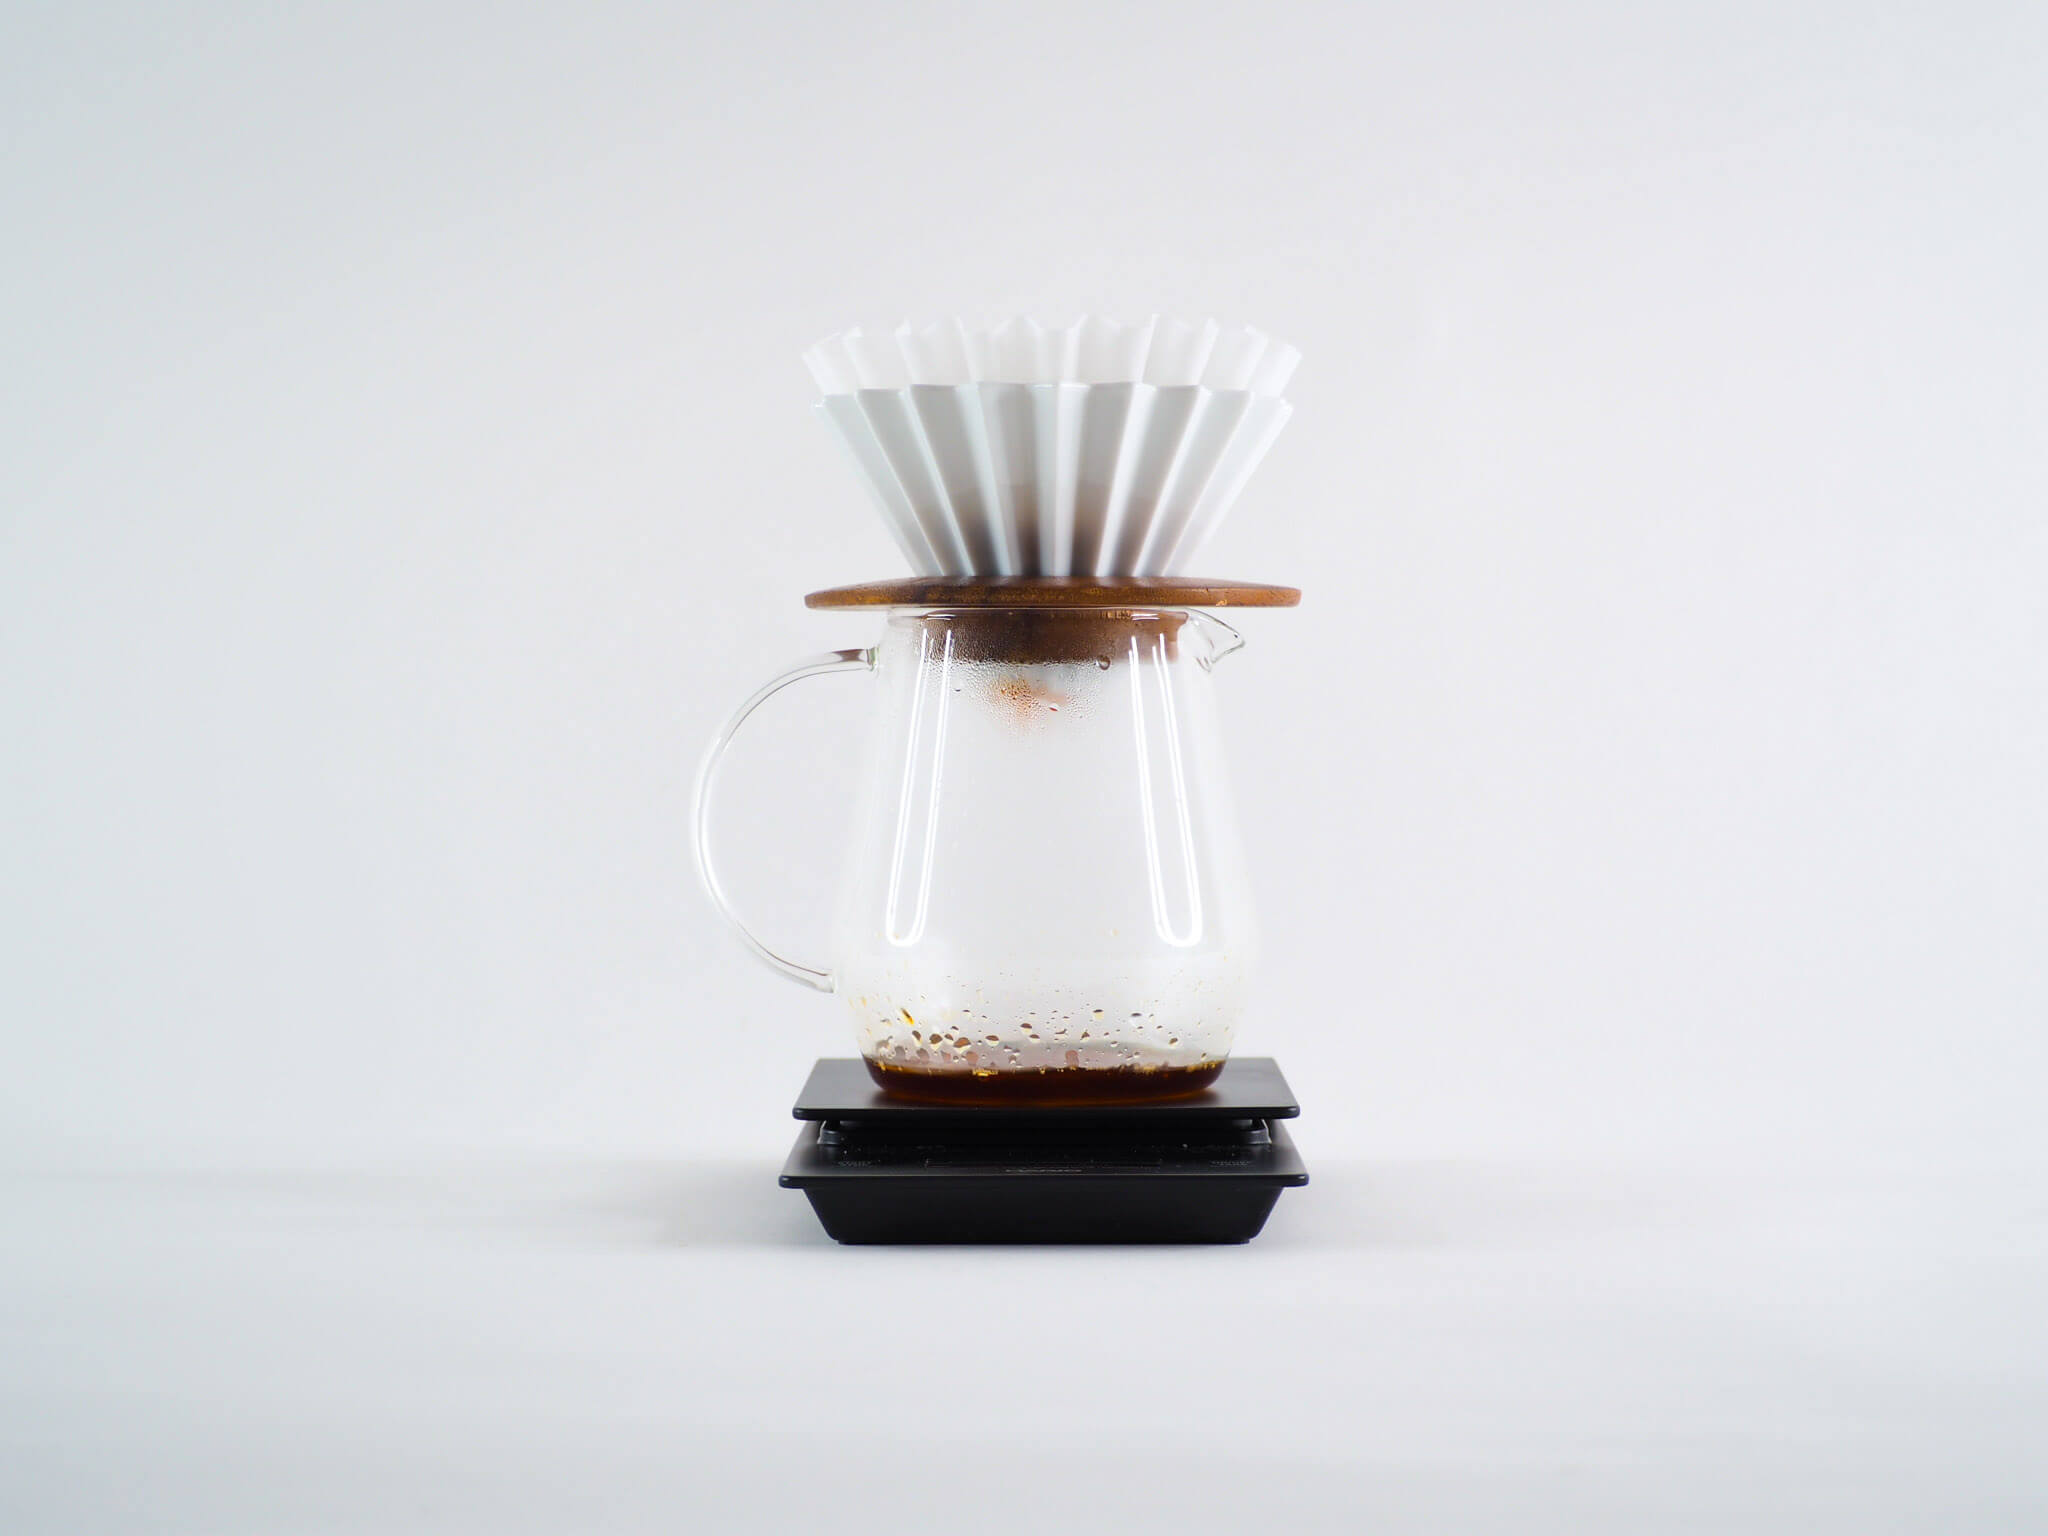 5 ways to brew coffee origami dripper